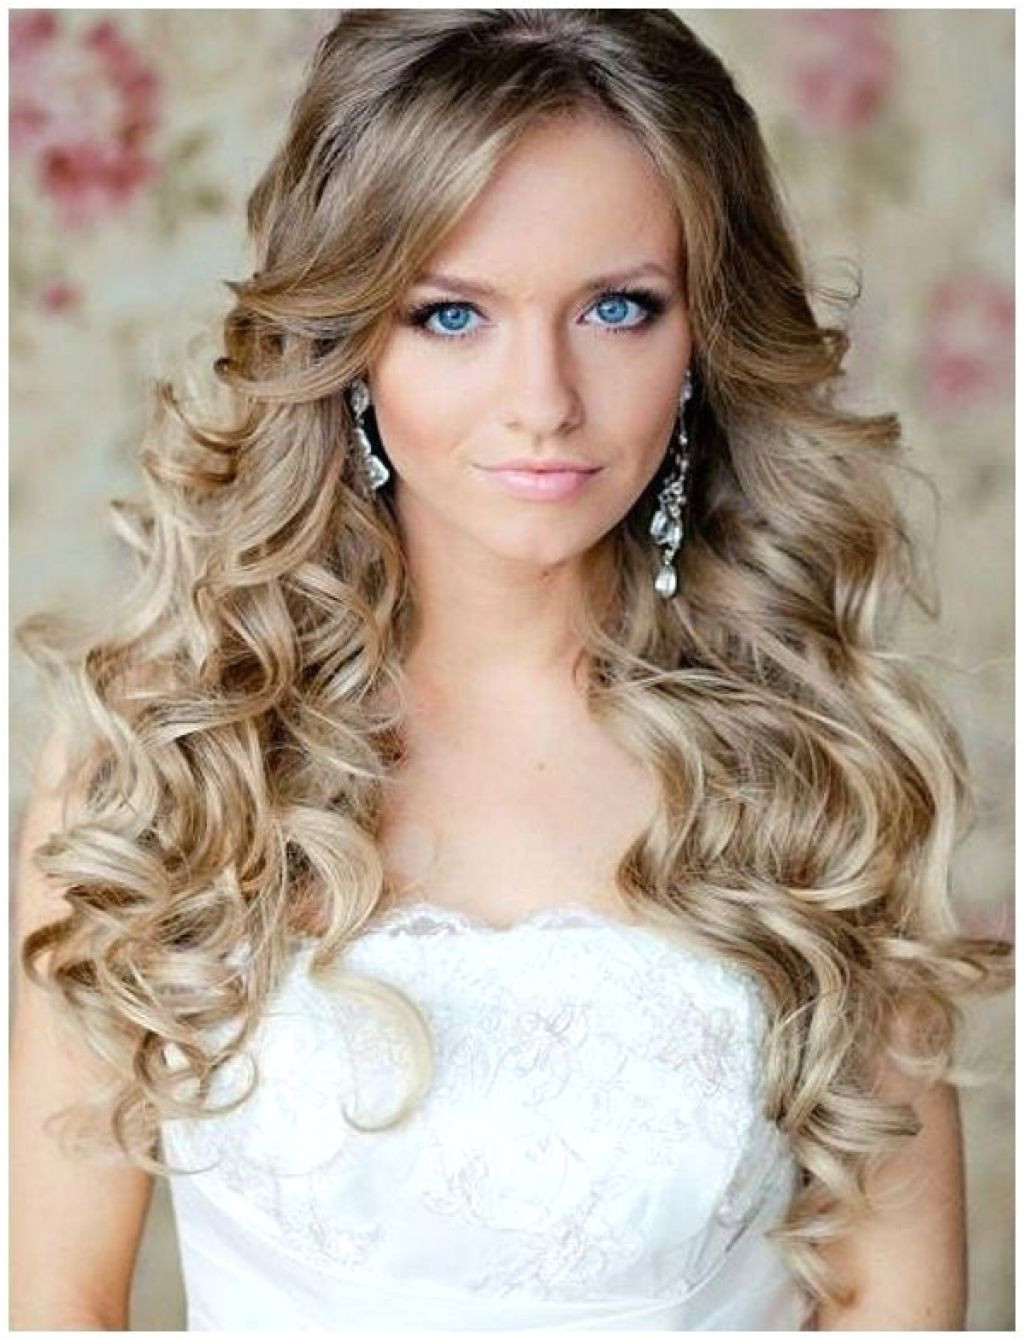 Wedding Hairstyles Down Simple Wedding Guest Hairstyles with Bangs Simple Wedding Hairstyles Simple